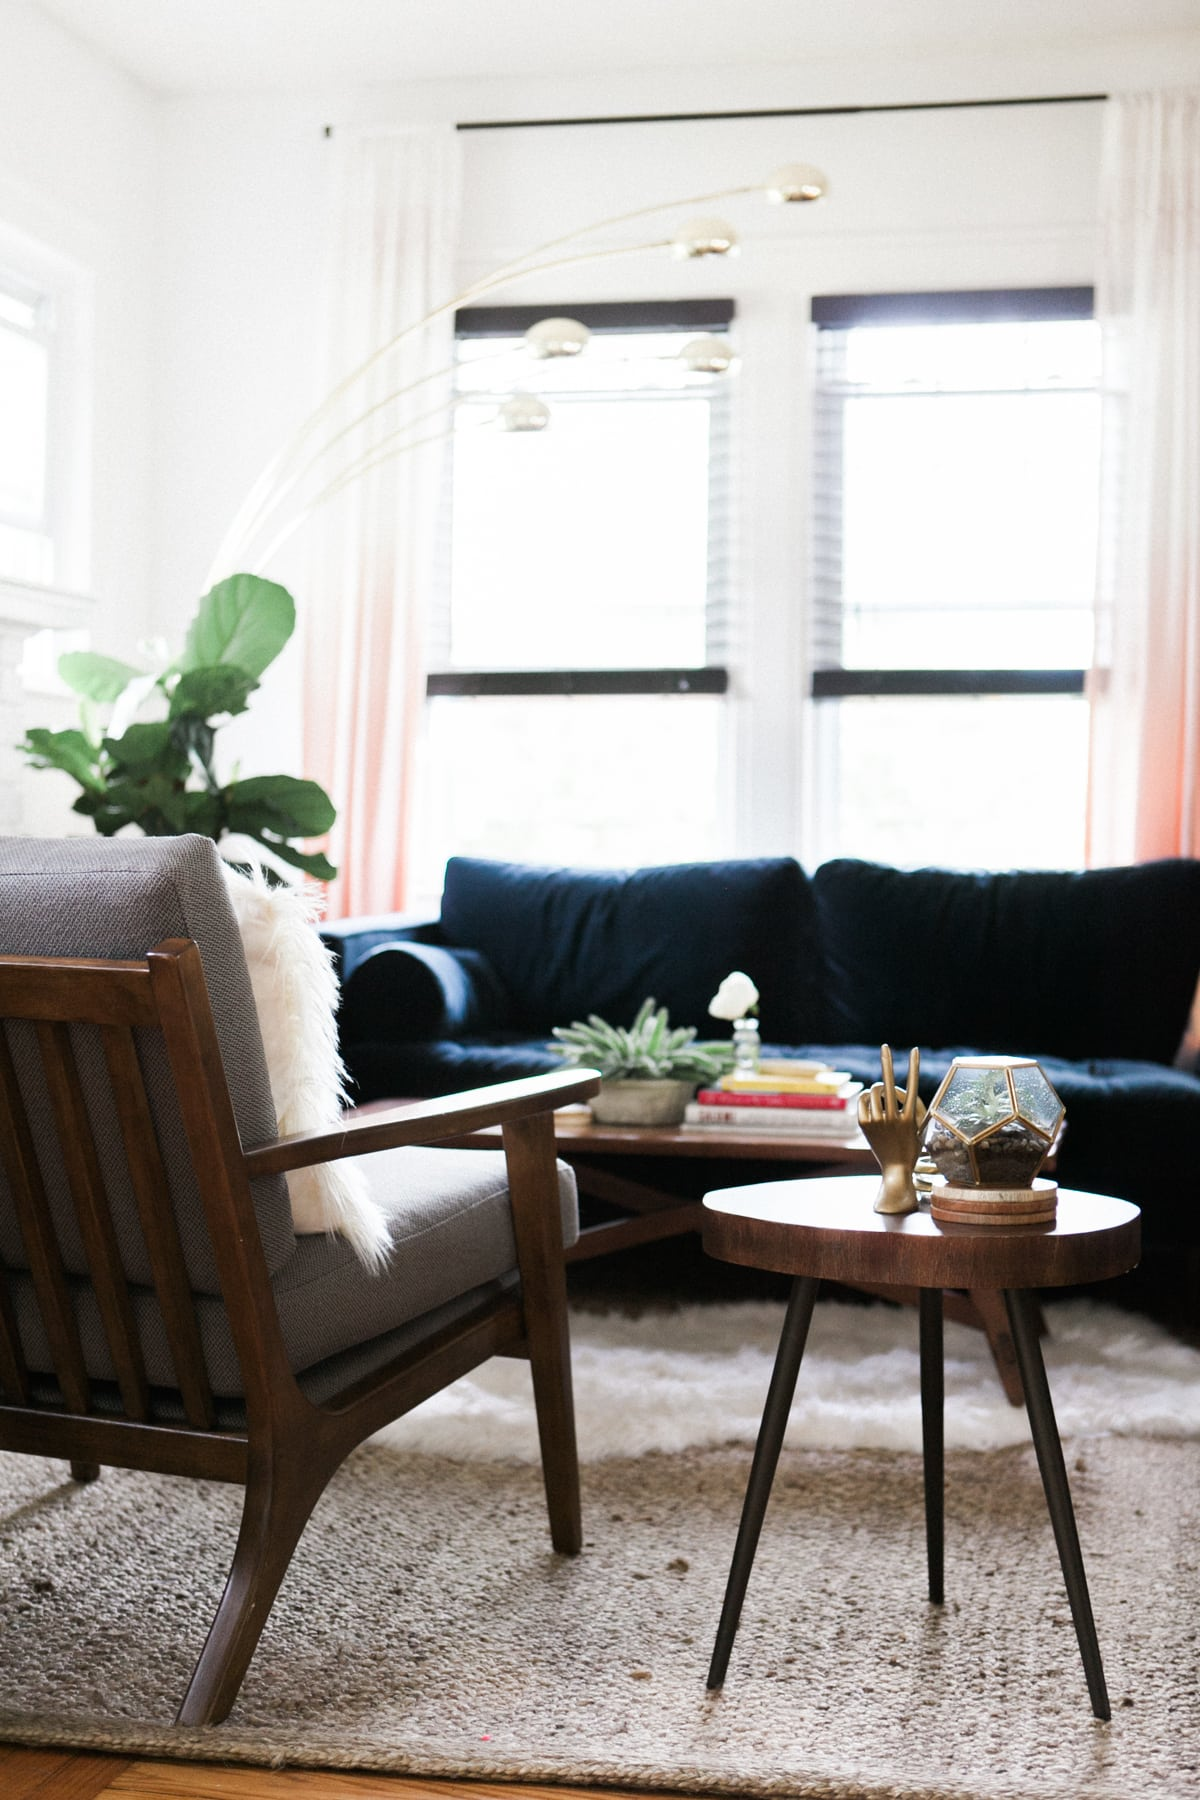 Eclectic Home TourムSummer 2017 Jessica Brigham